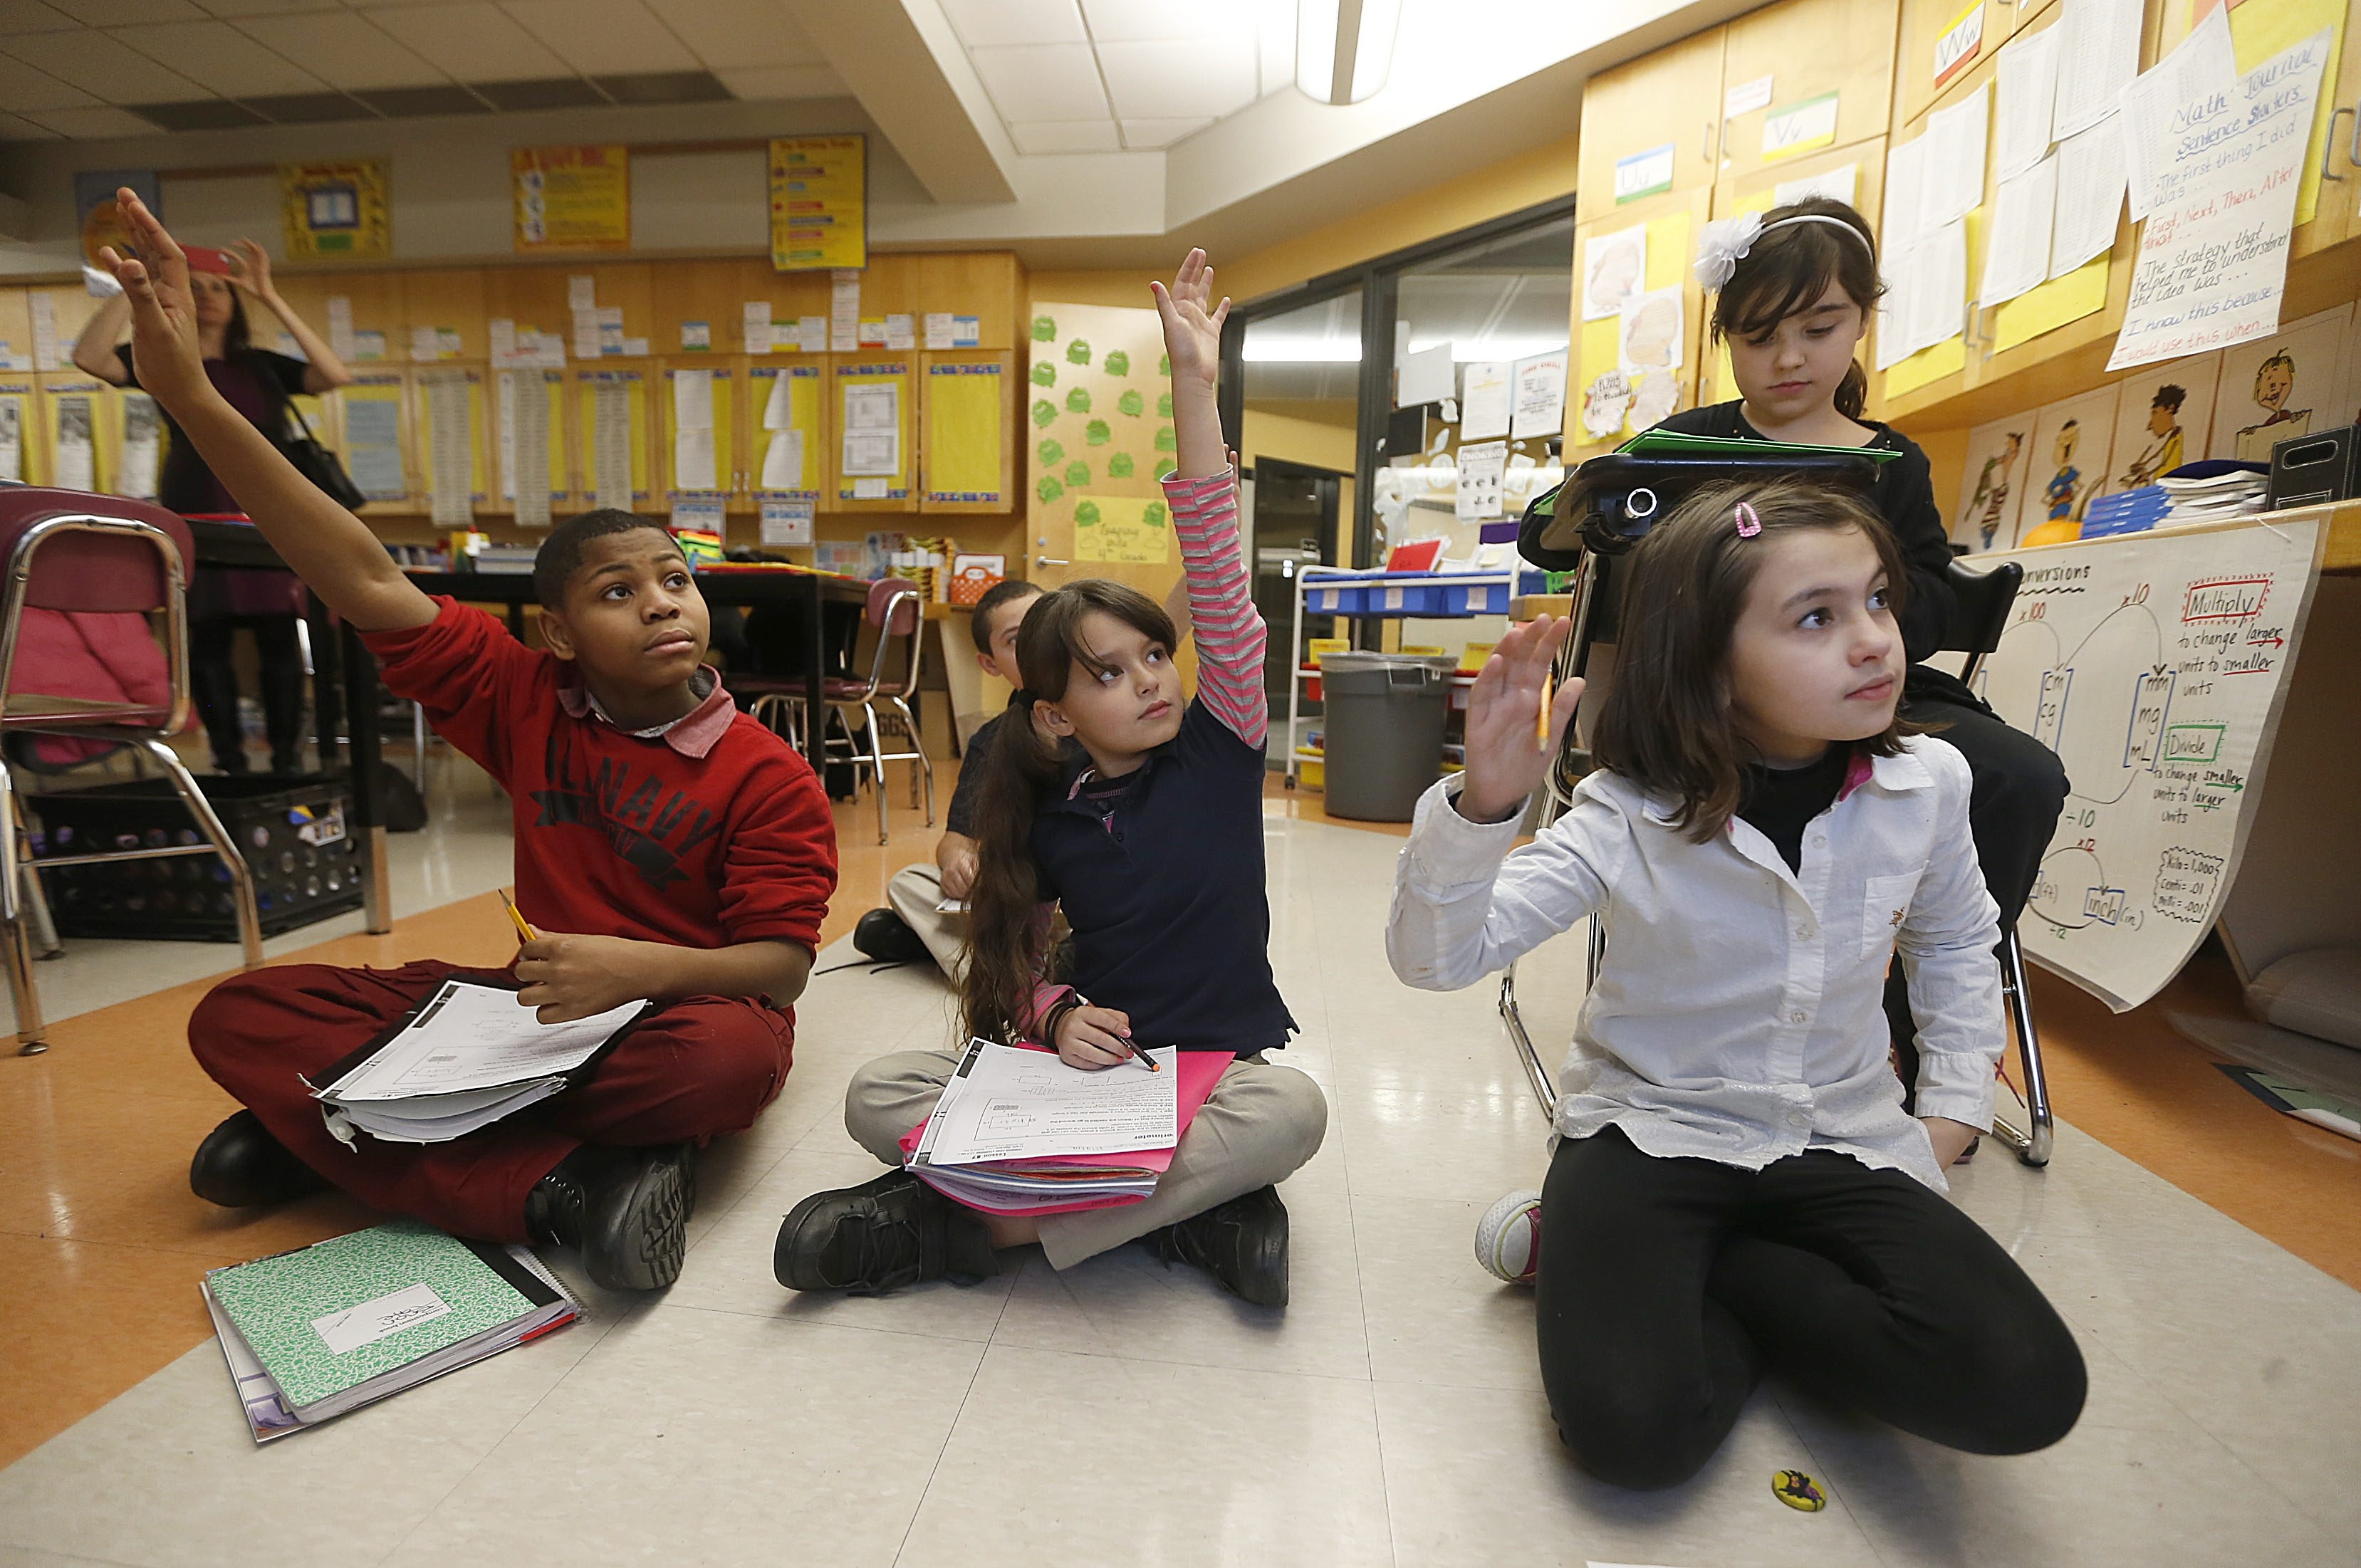 Students show, in this file photo, that they're not done learning for the day as they take advantage of after school academics at William J. Grabiarz School of Excellence.  (Robert Kirkham/Buffalo News)